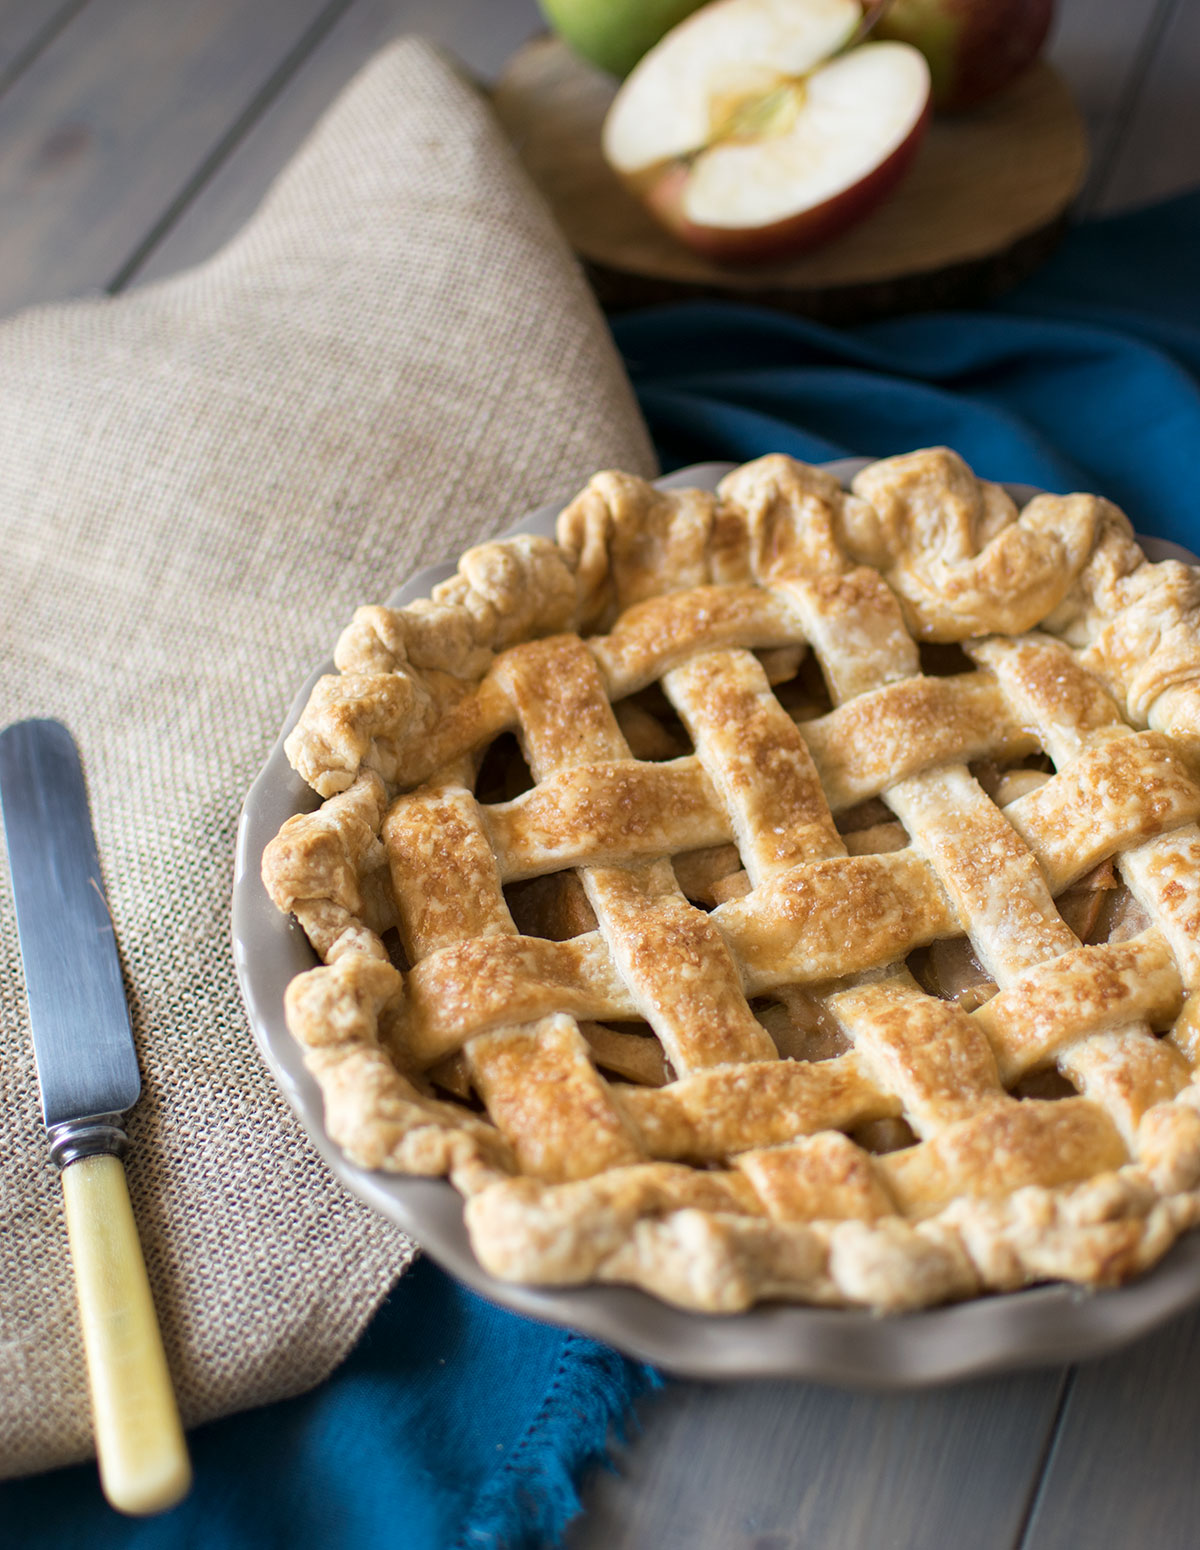 apple_pie_ricetta_2